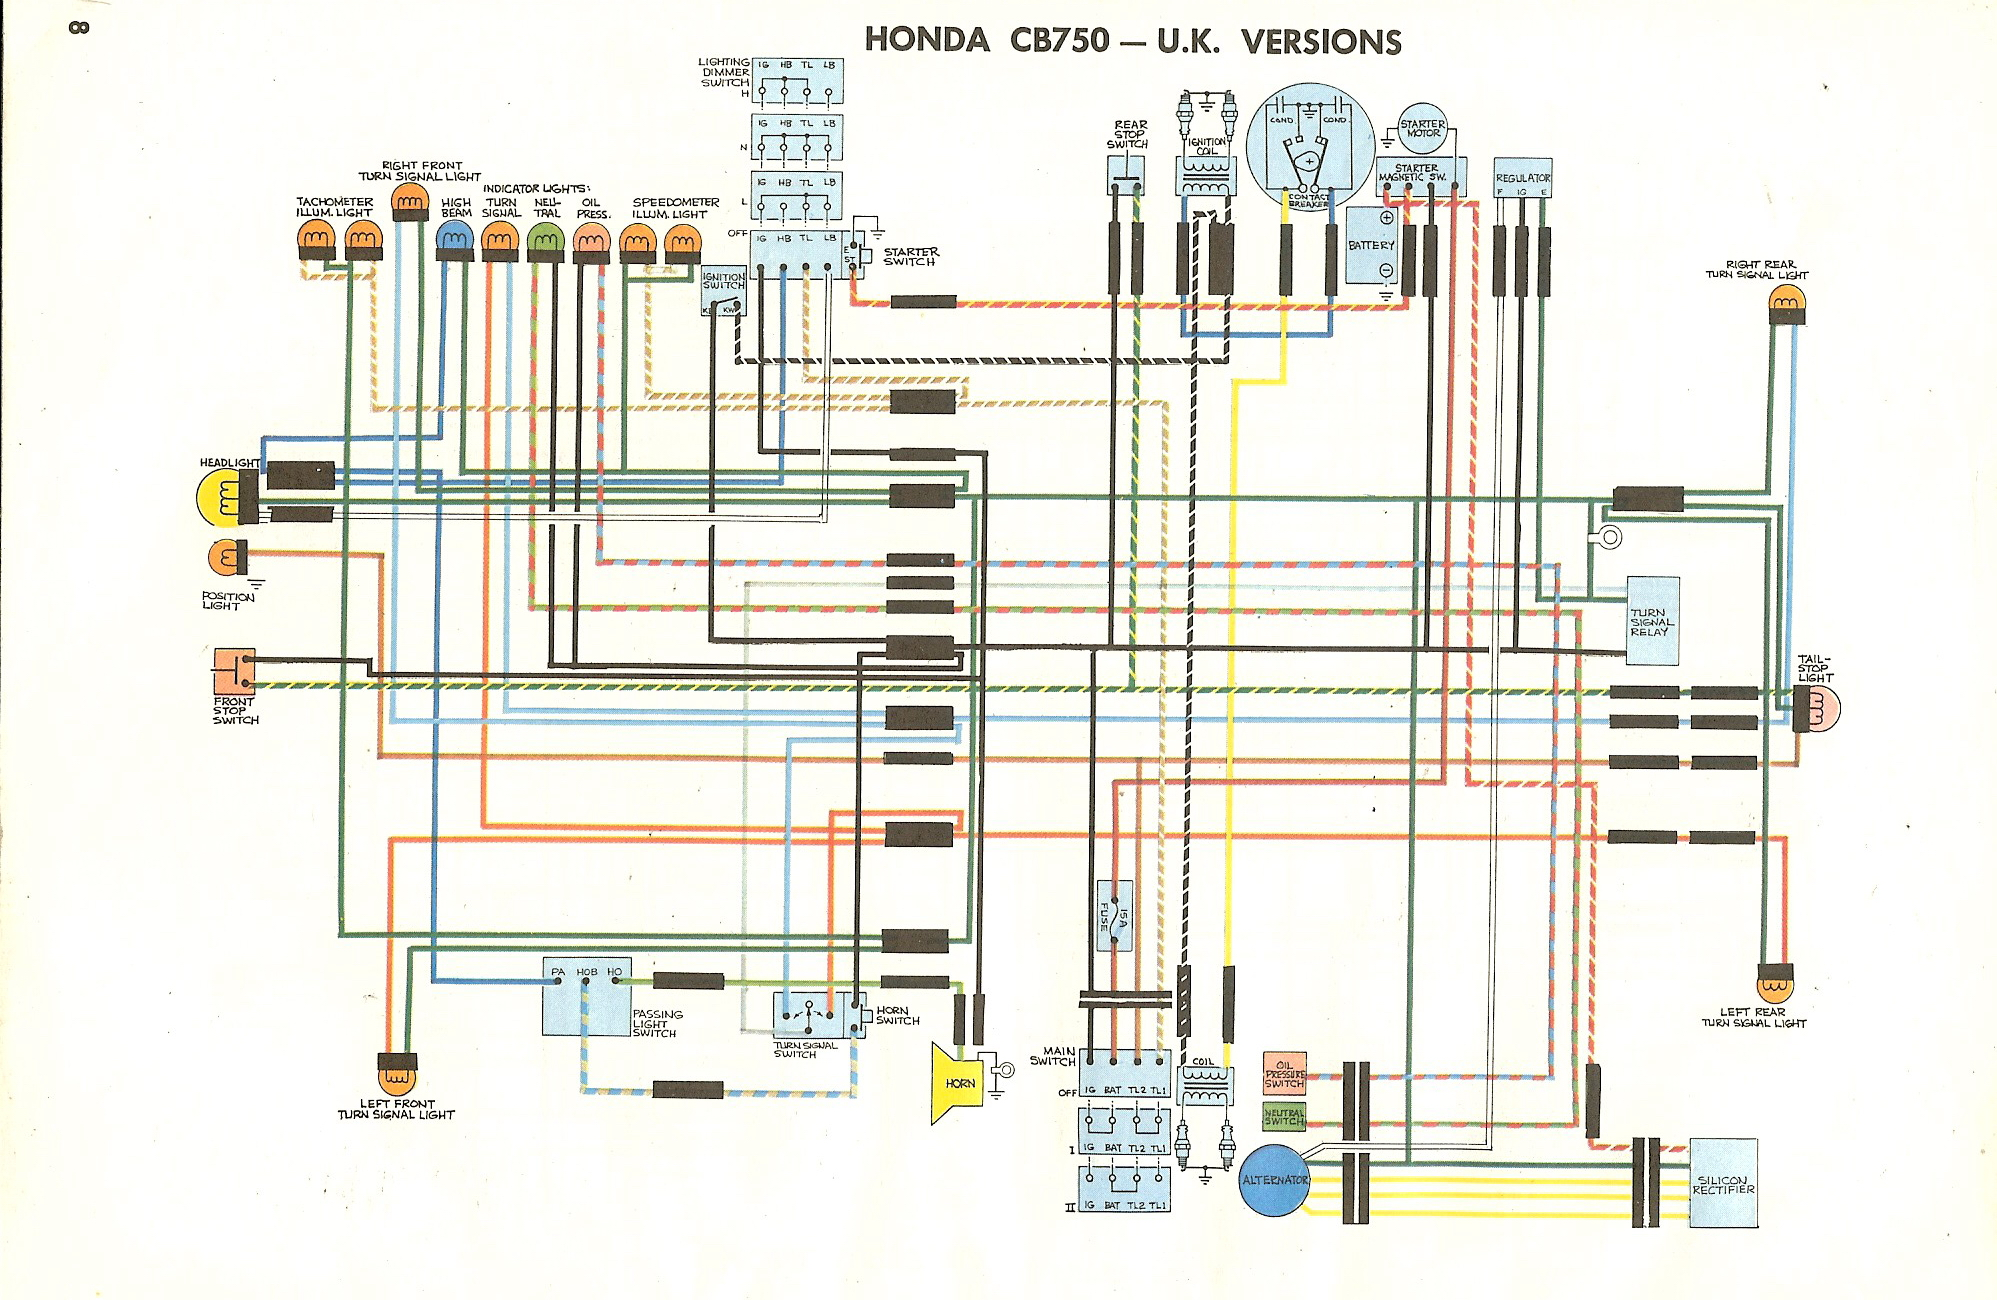 WD750UK cb750k wiring diagram motorcycle ignition wiring diagram \u2022 wiring 1975 honda cb550 wiring diagram at n-0.co